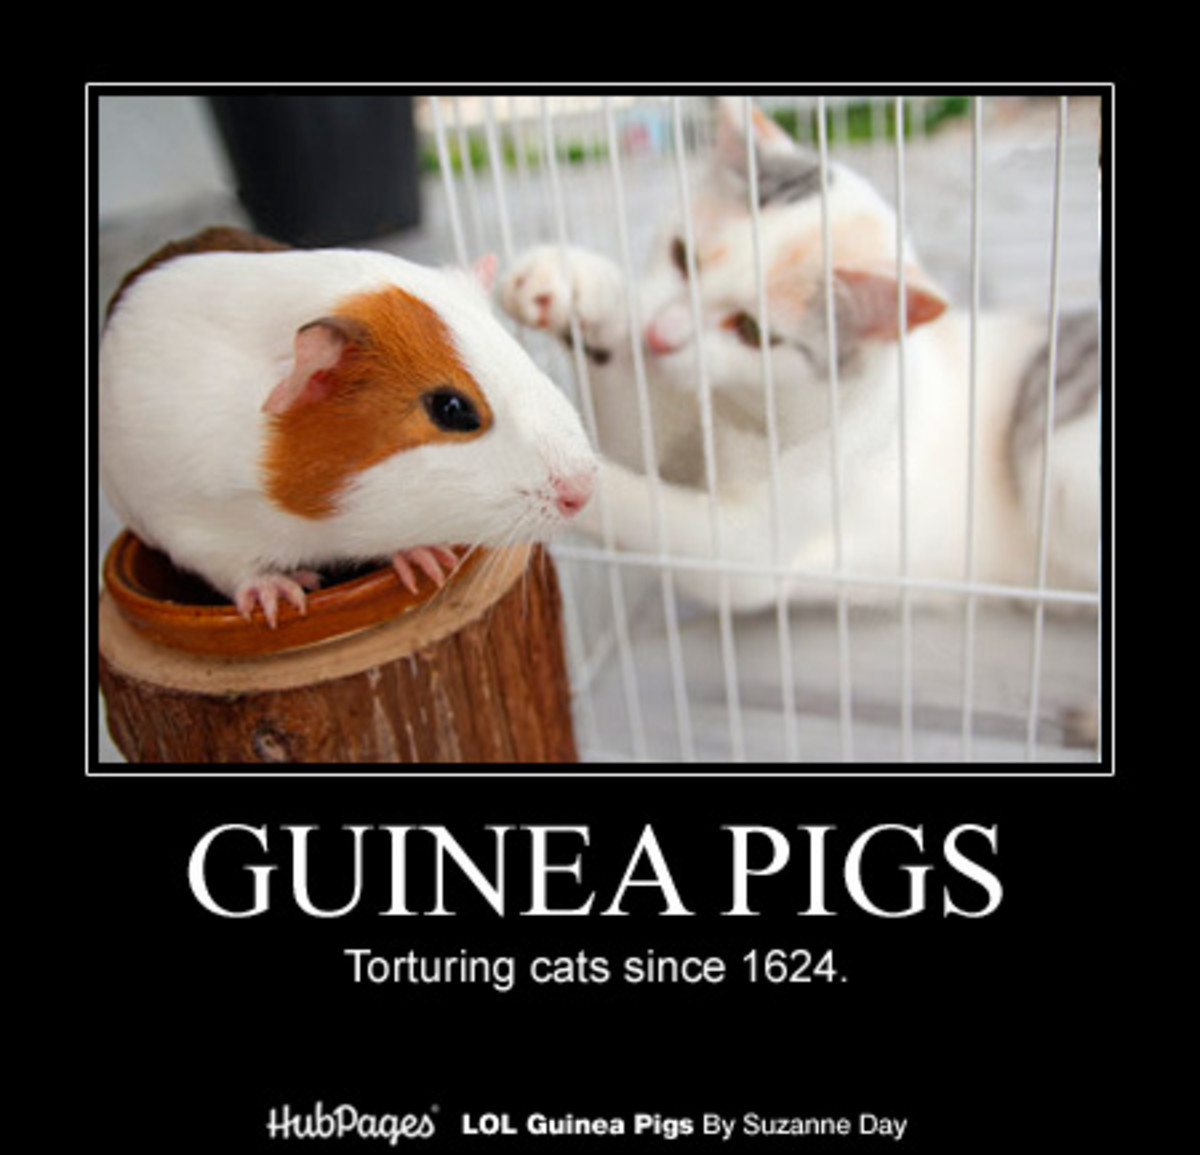 Guinea pigs were brought to Europe as pets in the 16th century.